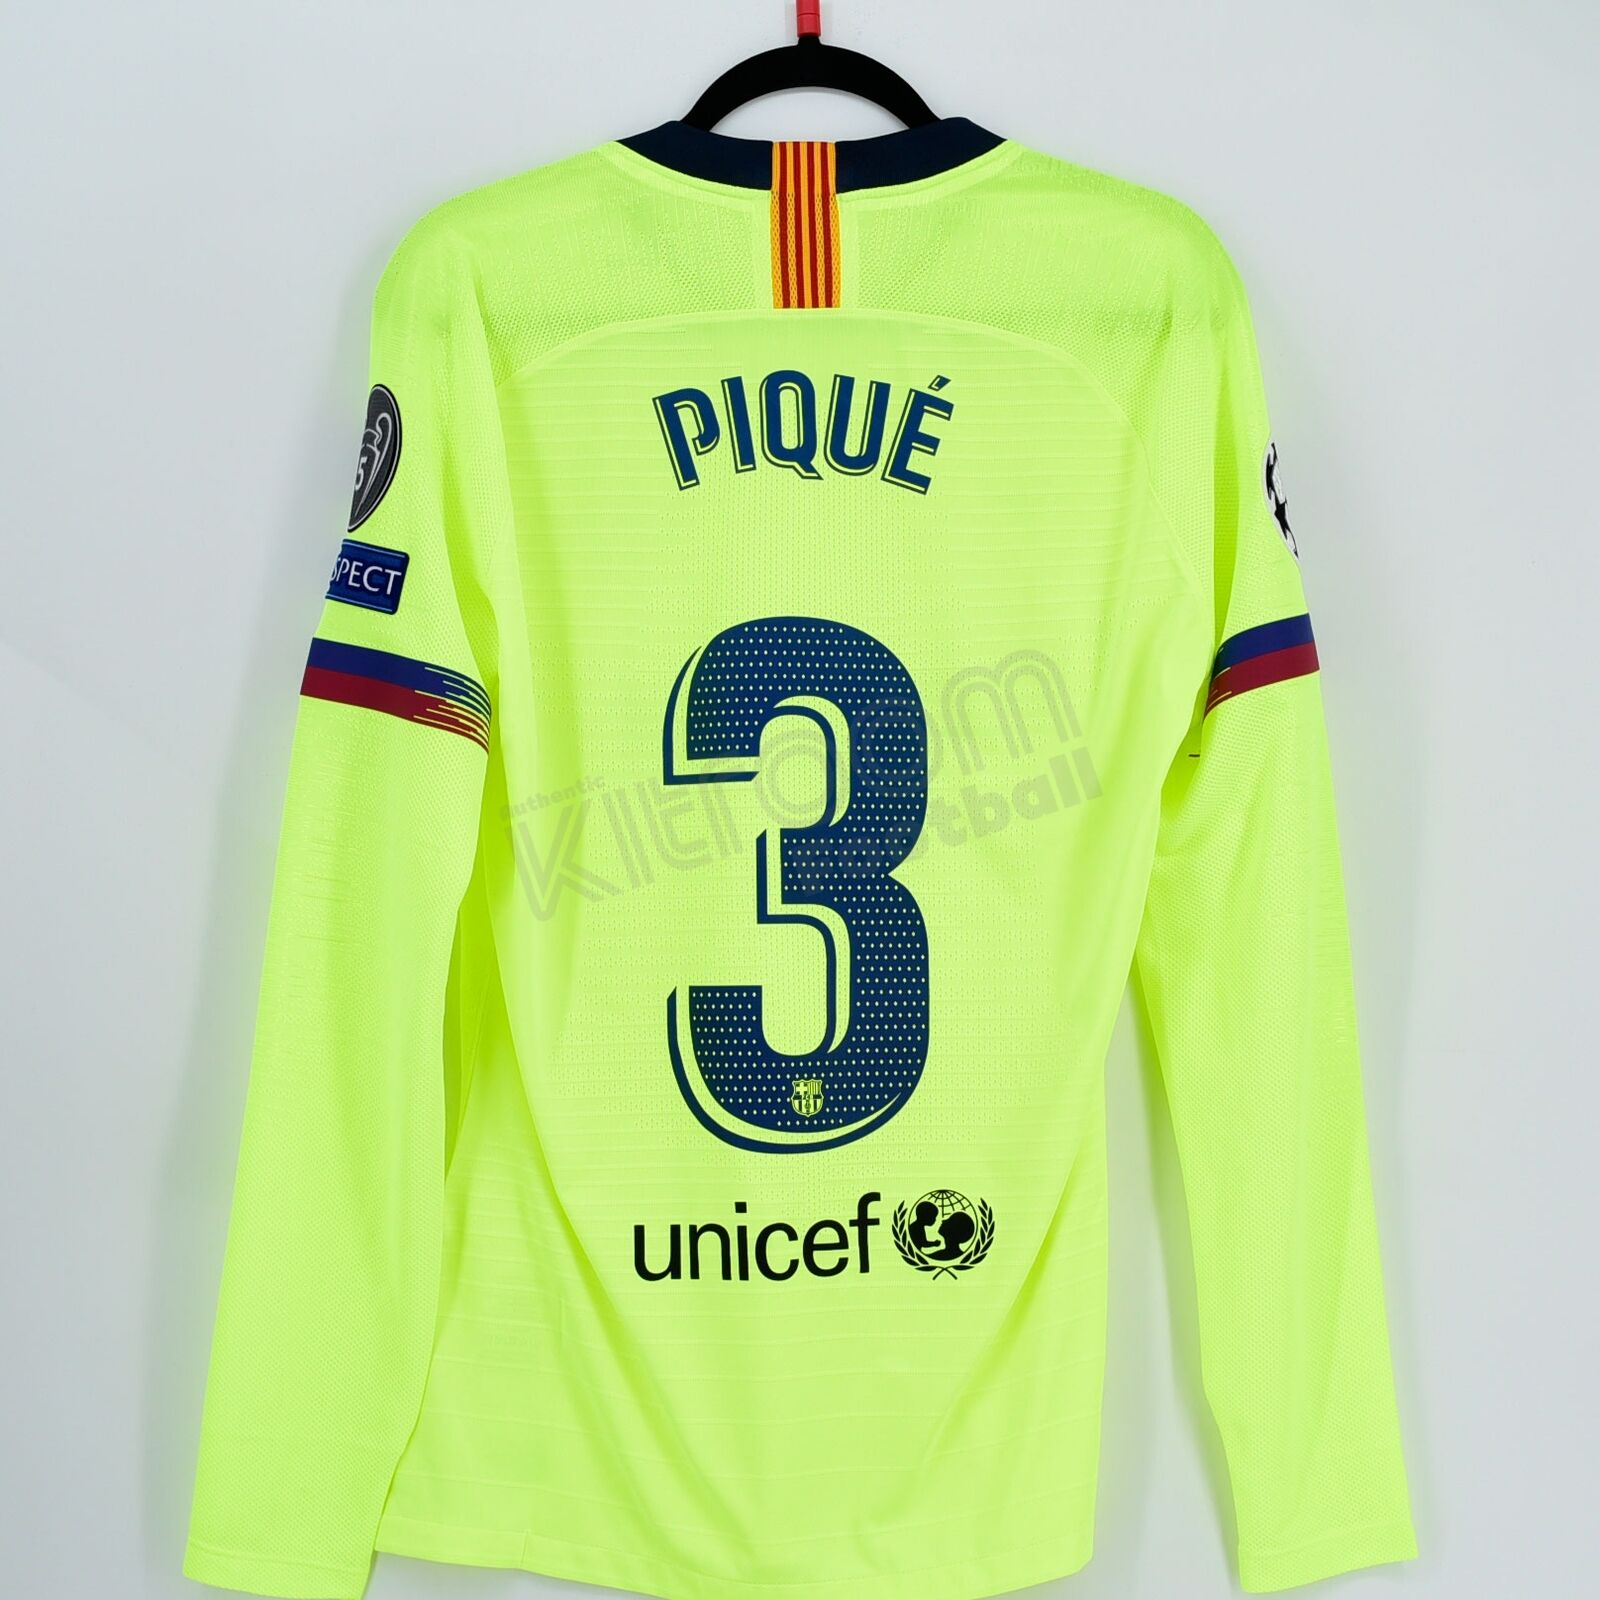 201819 Barcelona Player Issue Away Shirt  3 Piqué Champions League Match Un ...